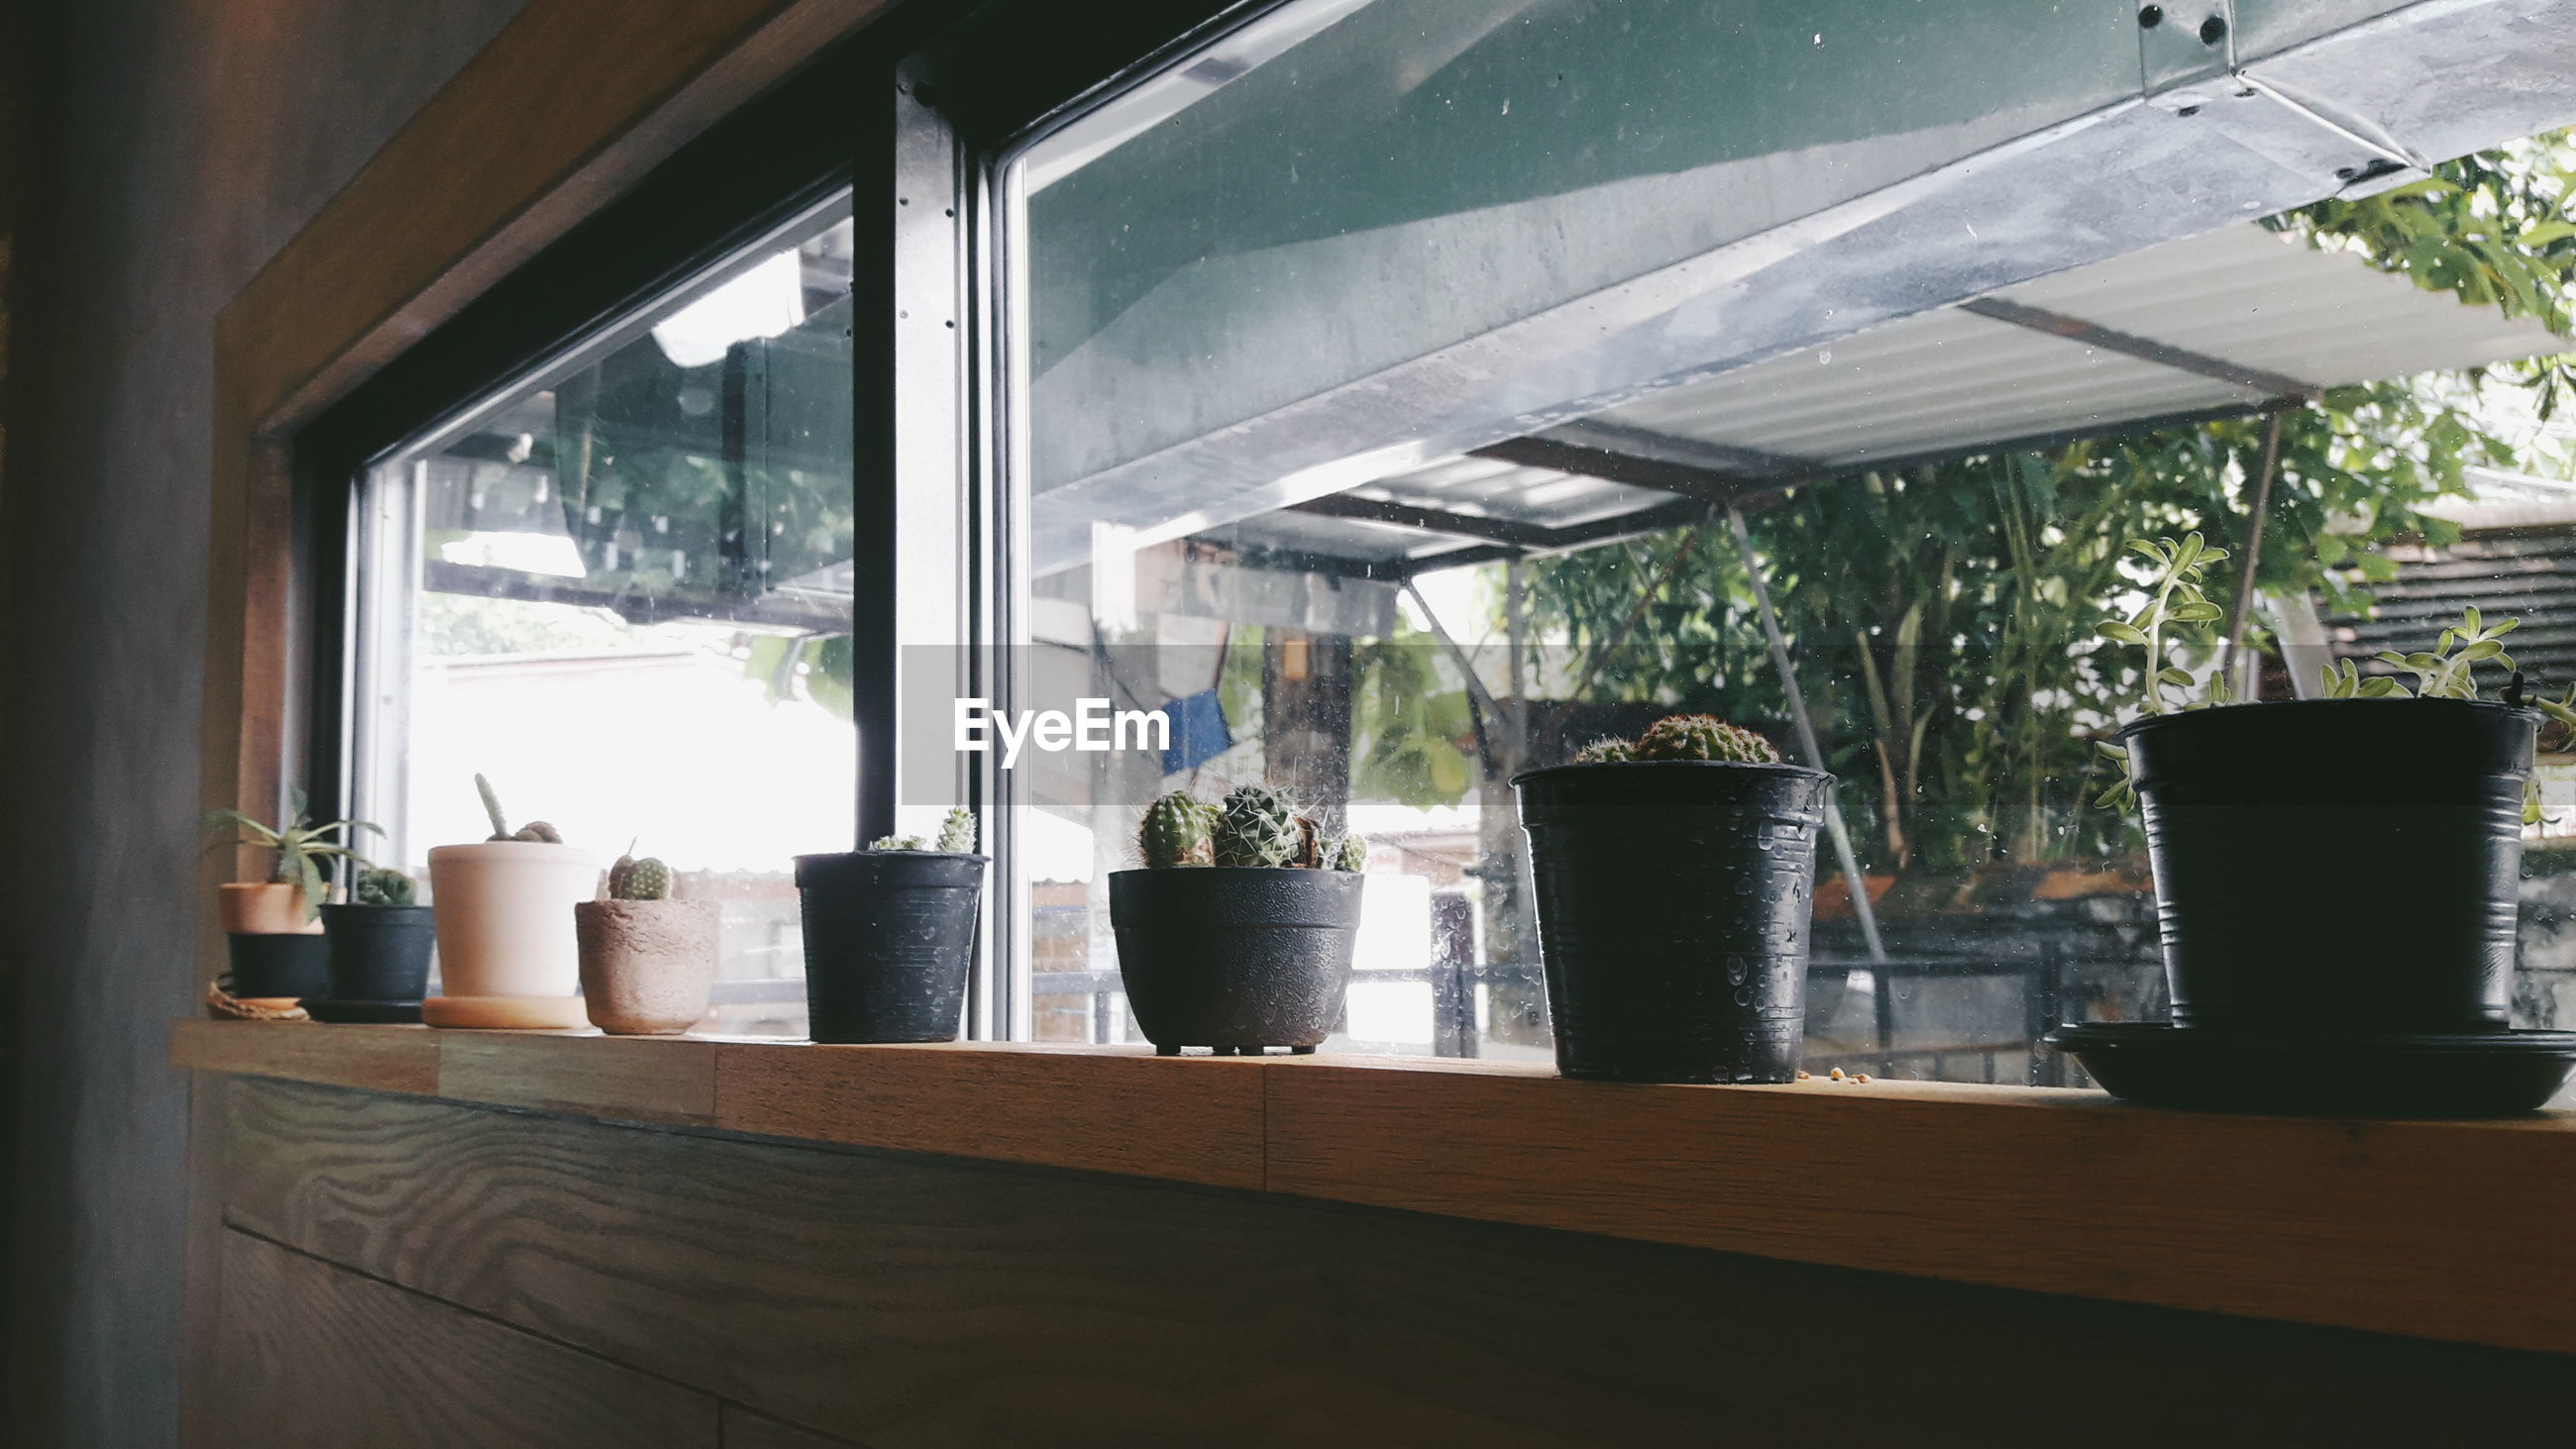 View of plants on window sill